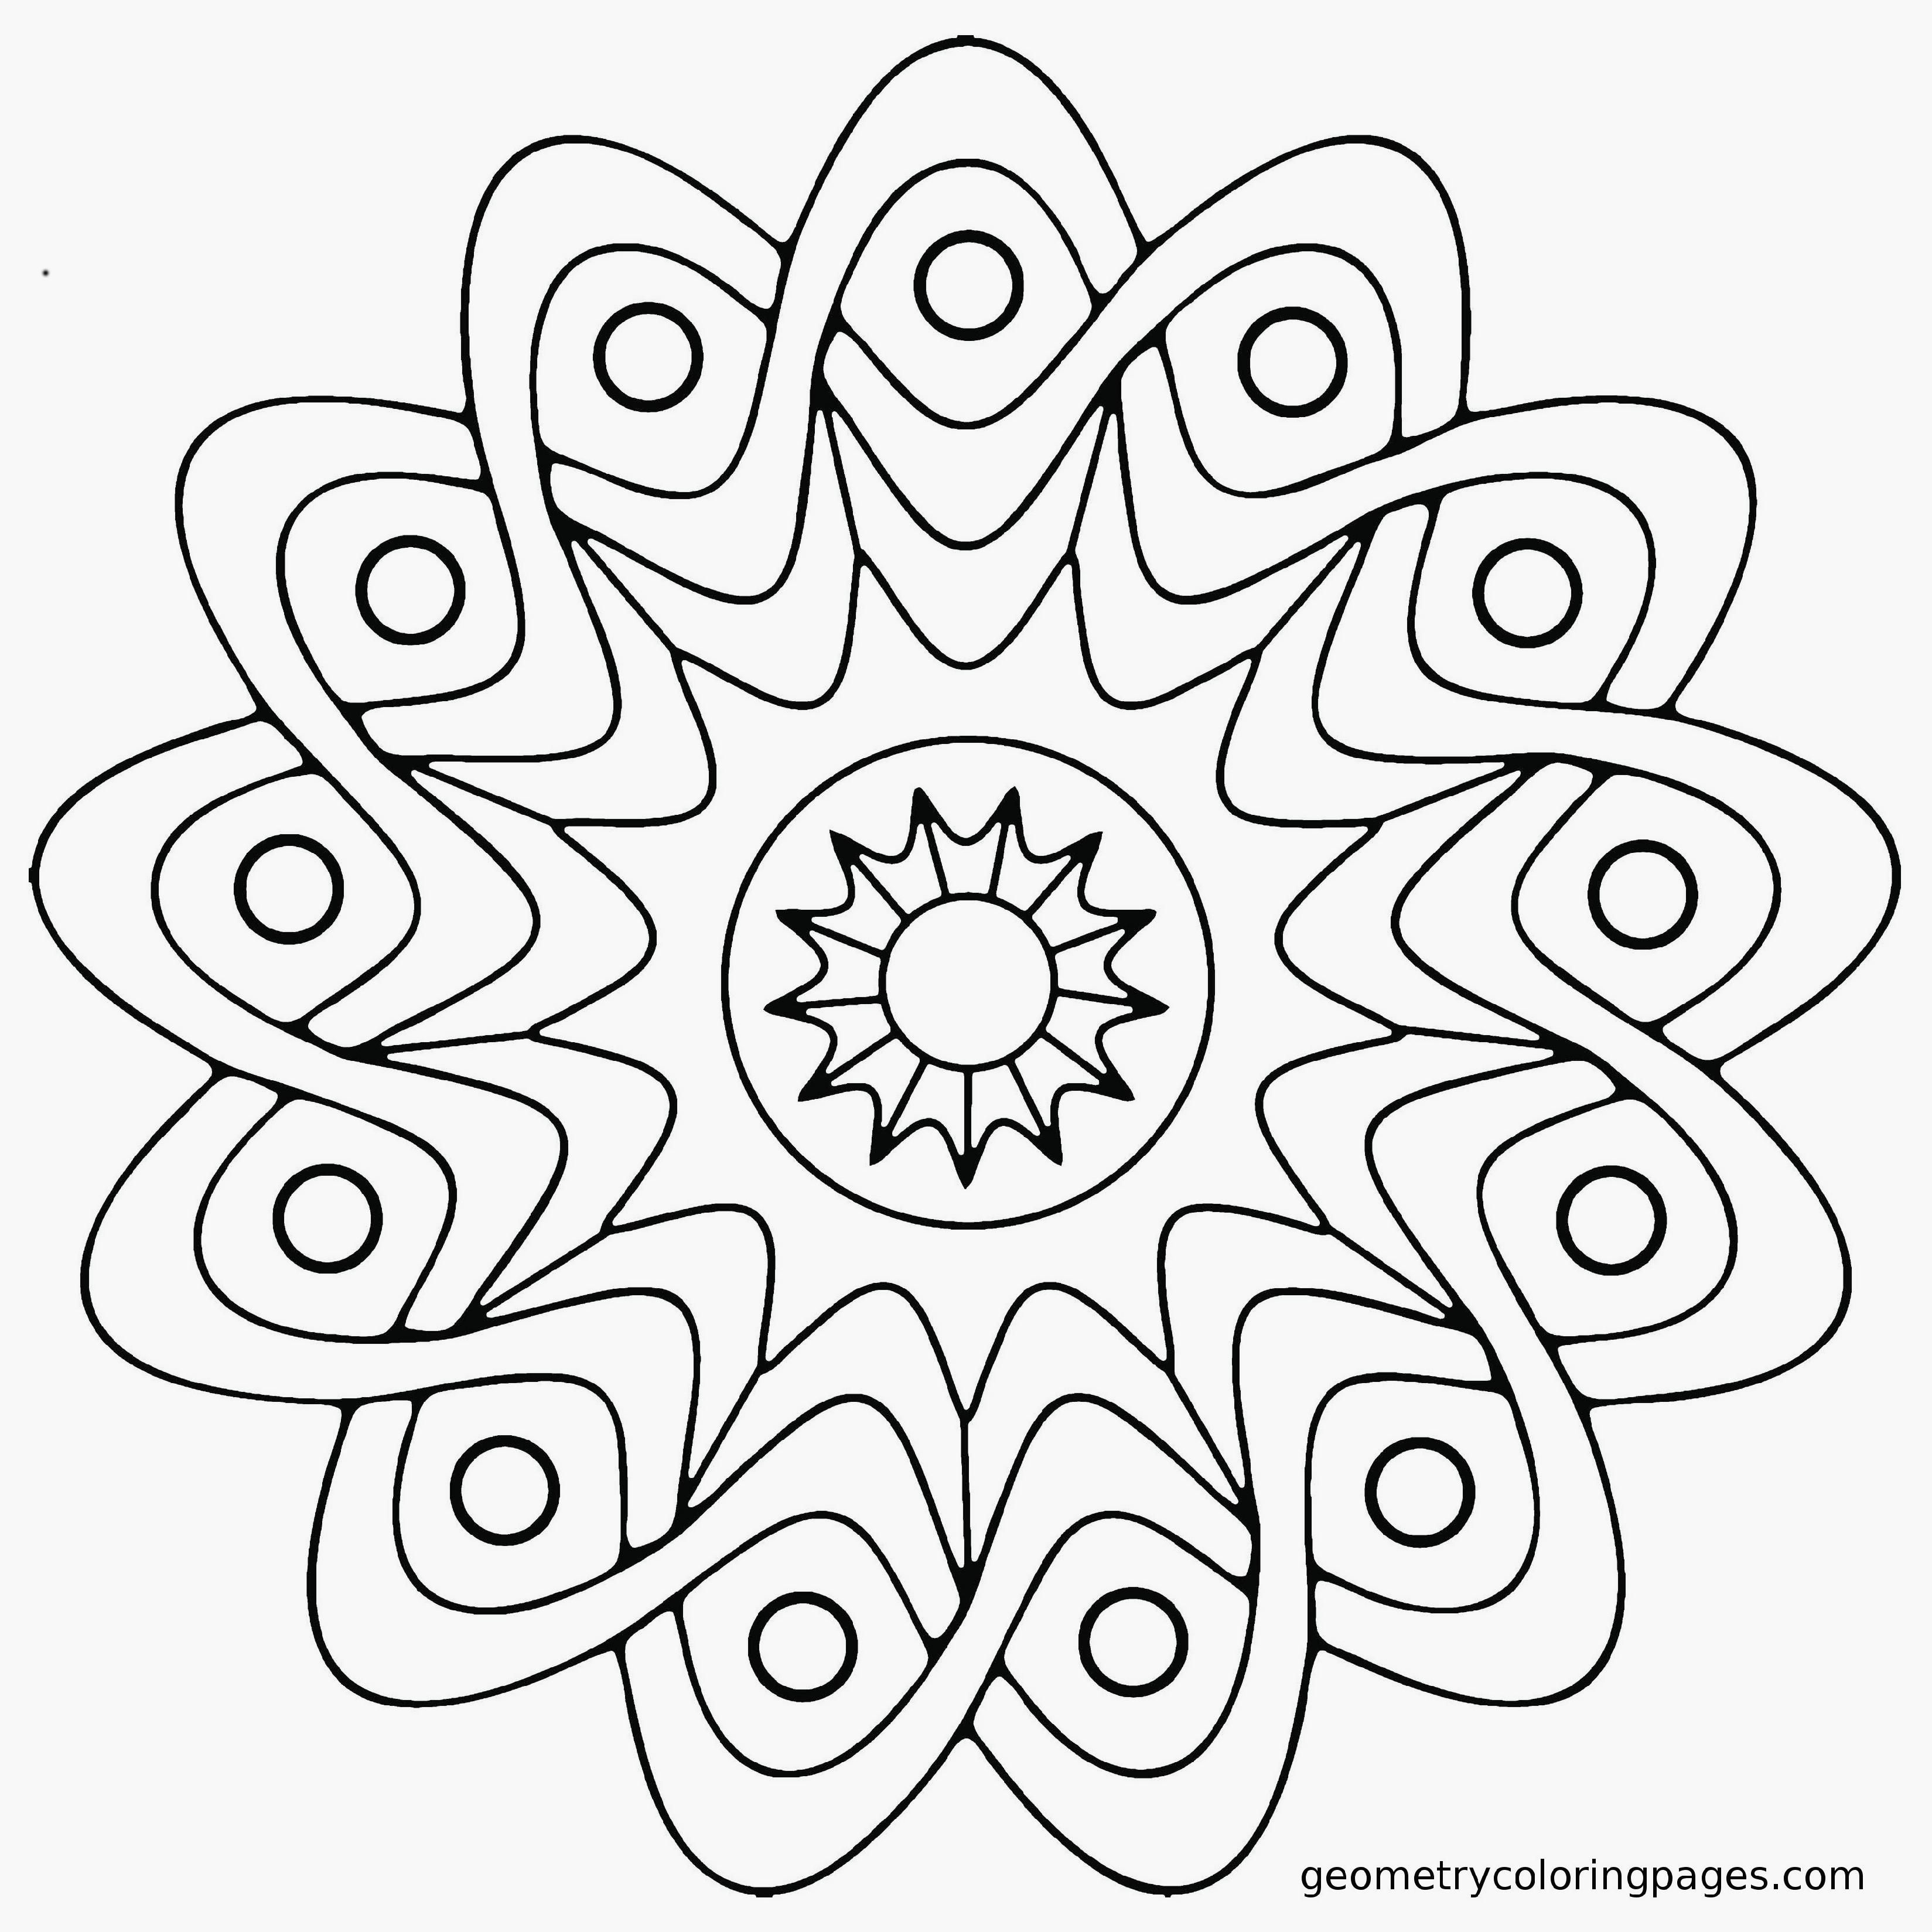 Flower Mandala Coloring Pages - Bing images | Embroidery Ideas ...